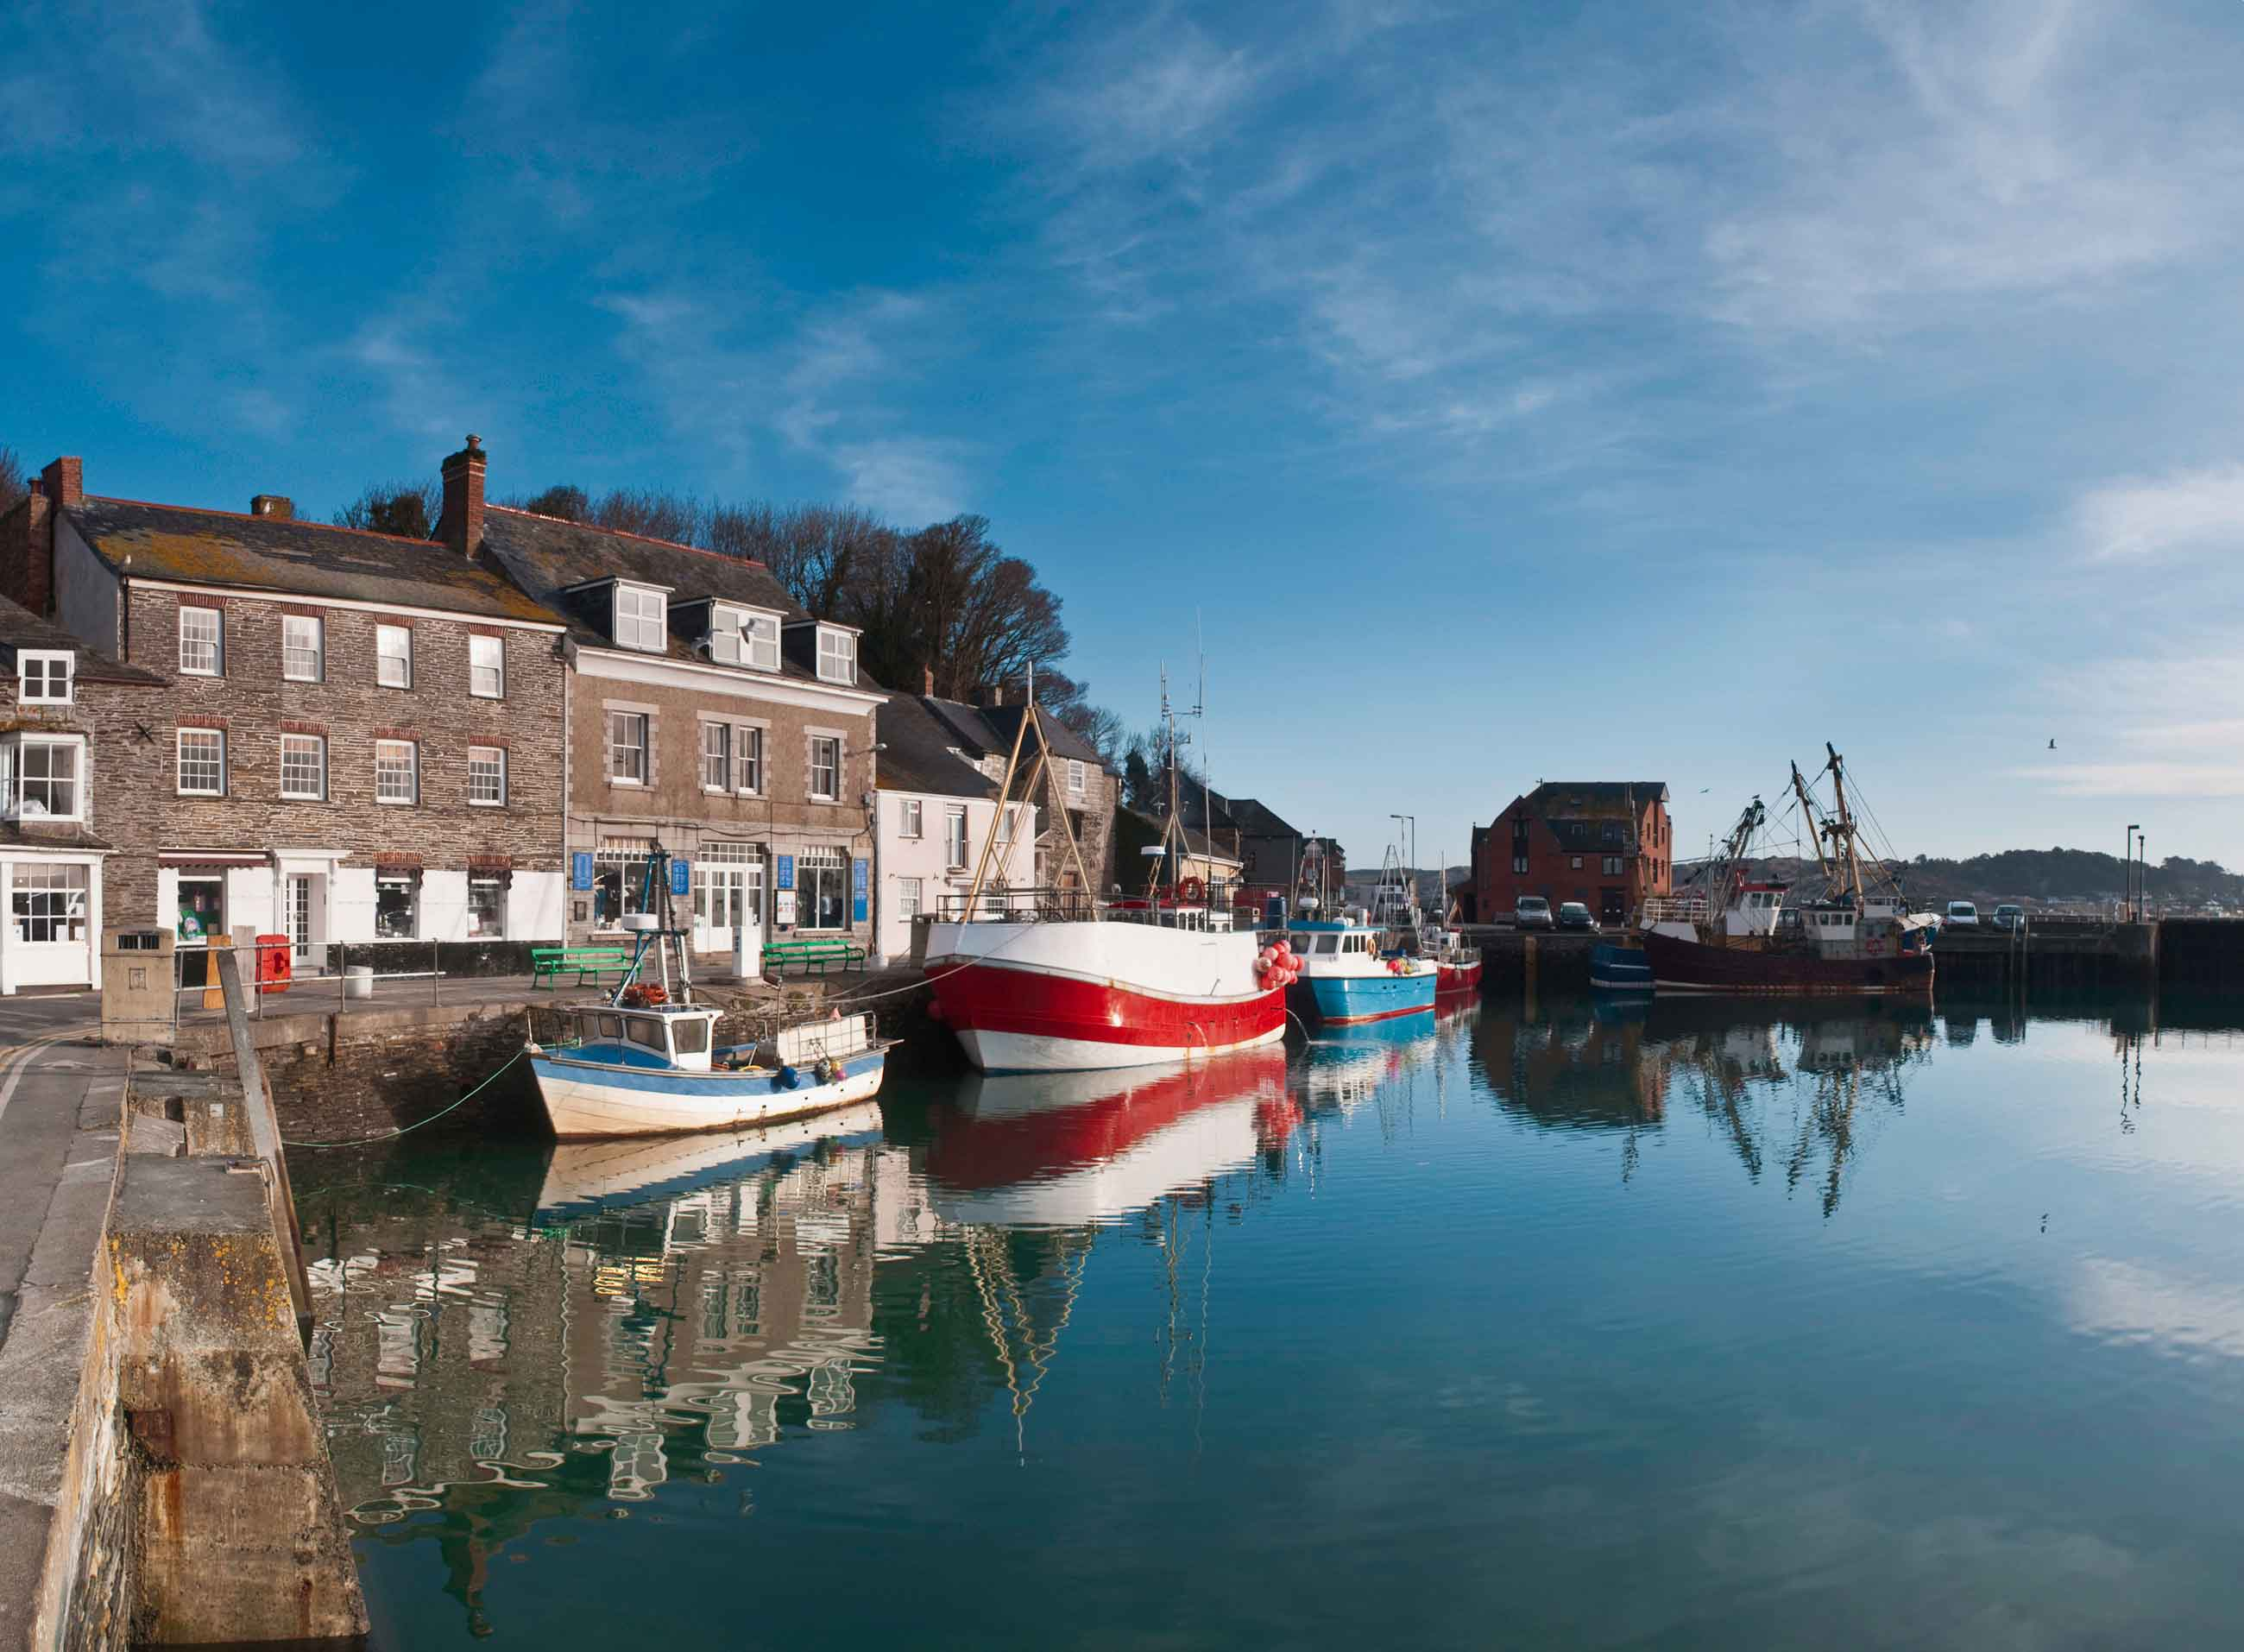 Canva---Panoramic-river-boat-view-of-Padstow-Harbor-in-Cornwall